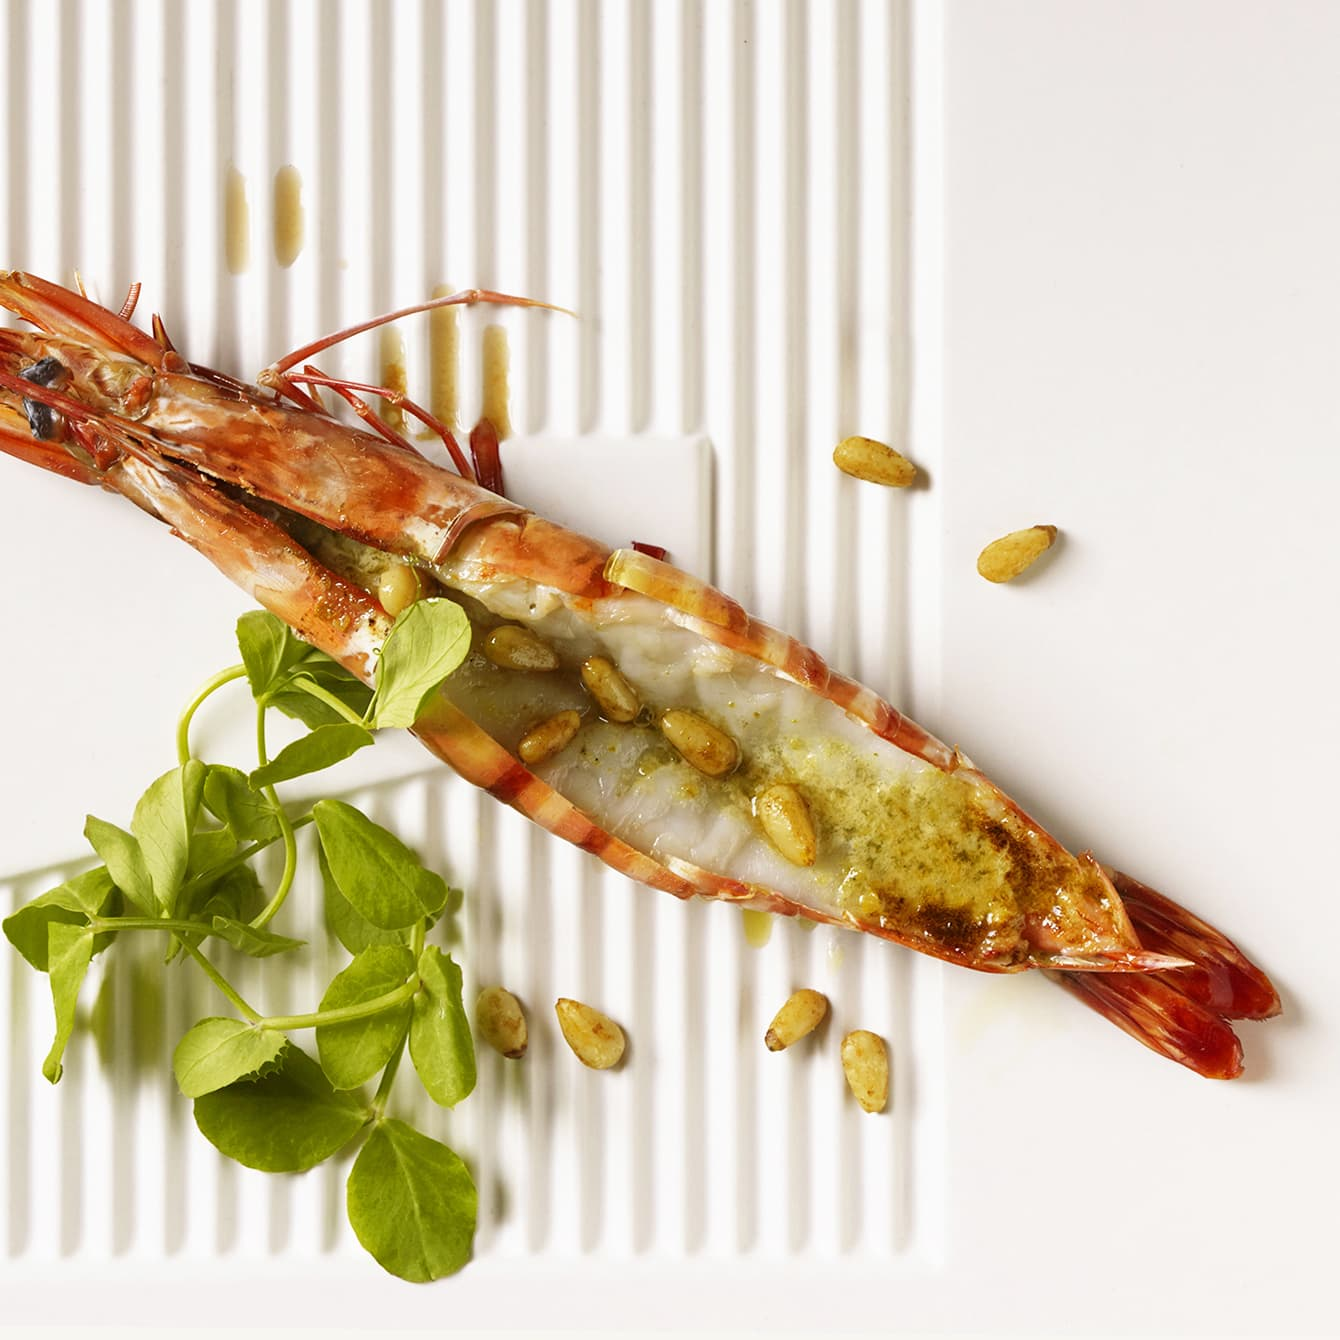 Giant tiger prawn grilled with Yuzu pepper paste